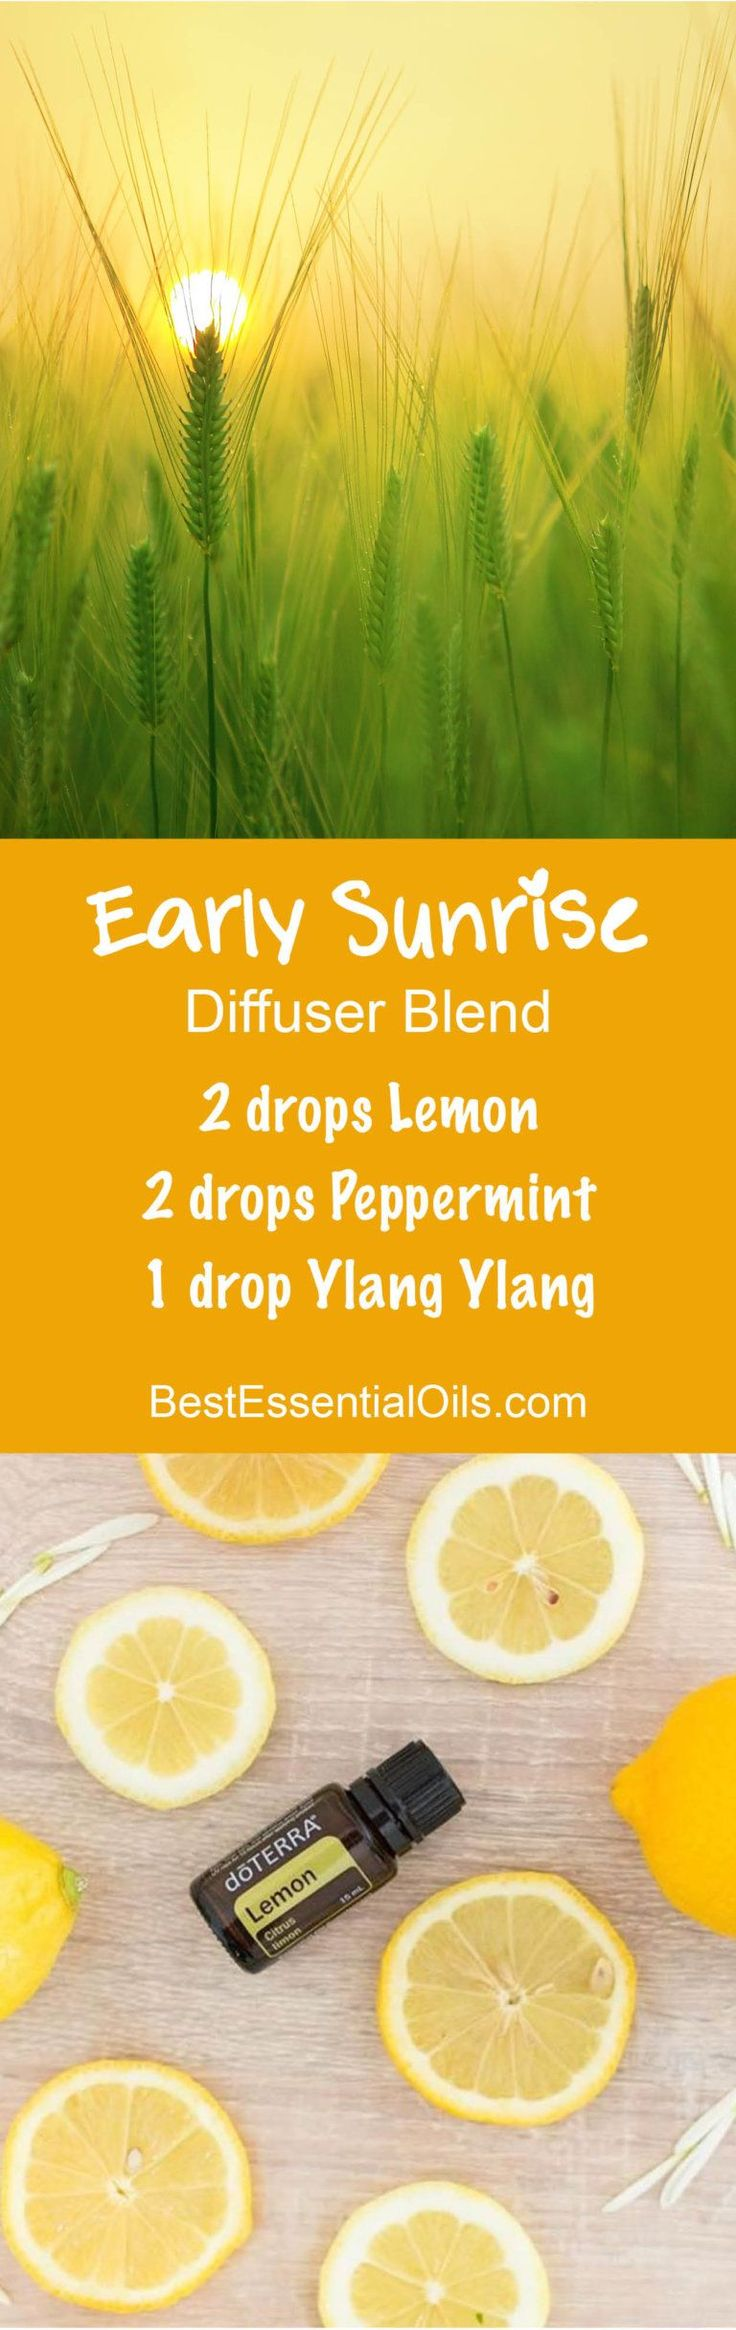 Early Sunrise doTERRA Diffuser Blend